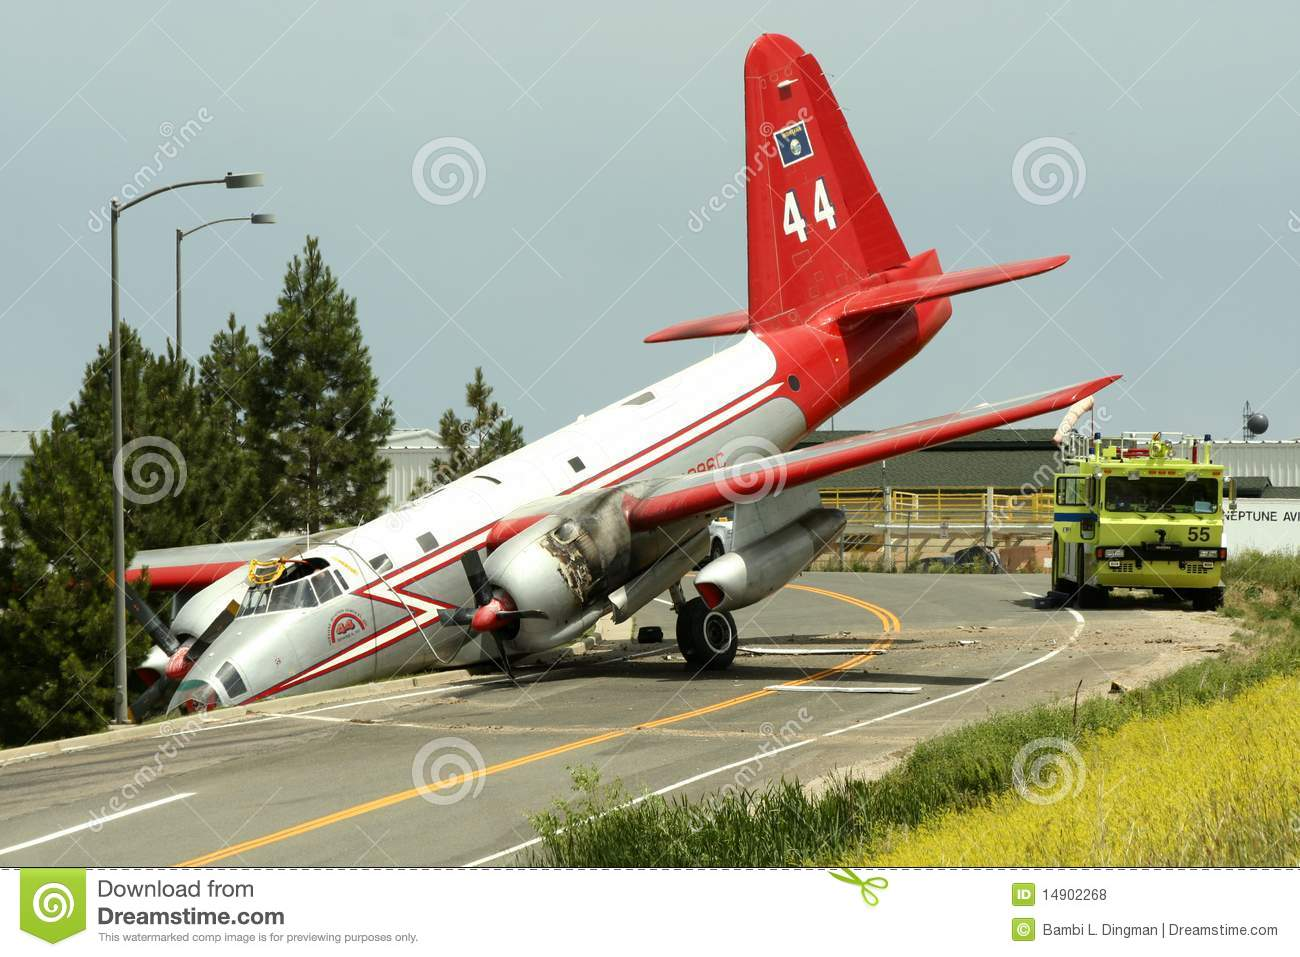 rc airplane crash with Photos Libres De Droits Accident D Avion Image14902268 on Watch as well Watch besides Flutter Aircraft Flutter additionally Ivory Coast Plane Crash 4 Killed additionally Watch.